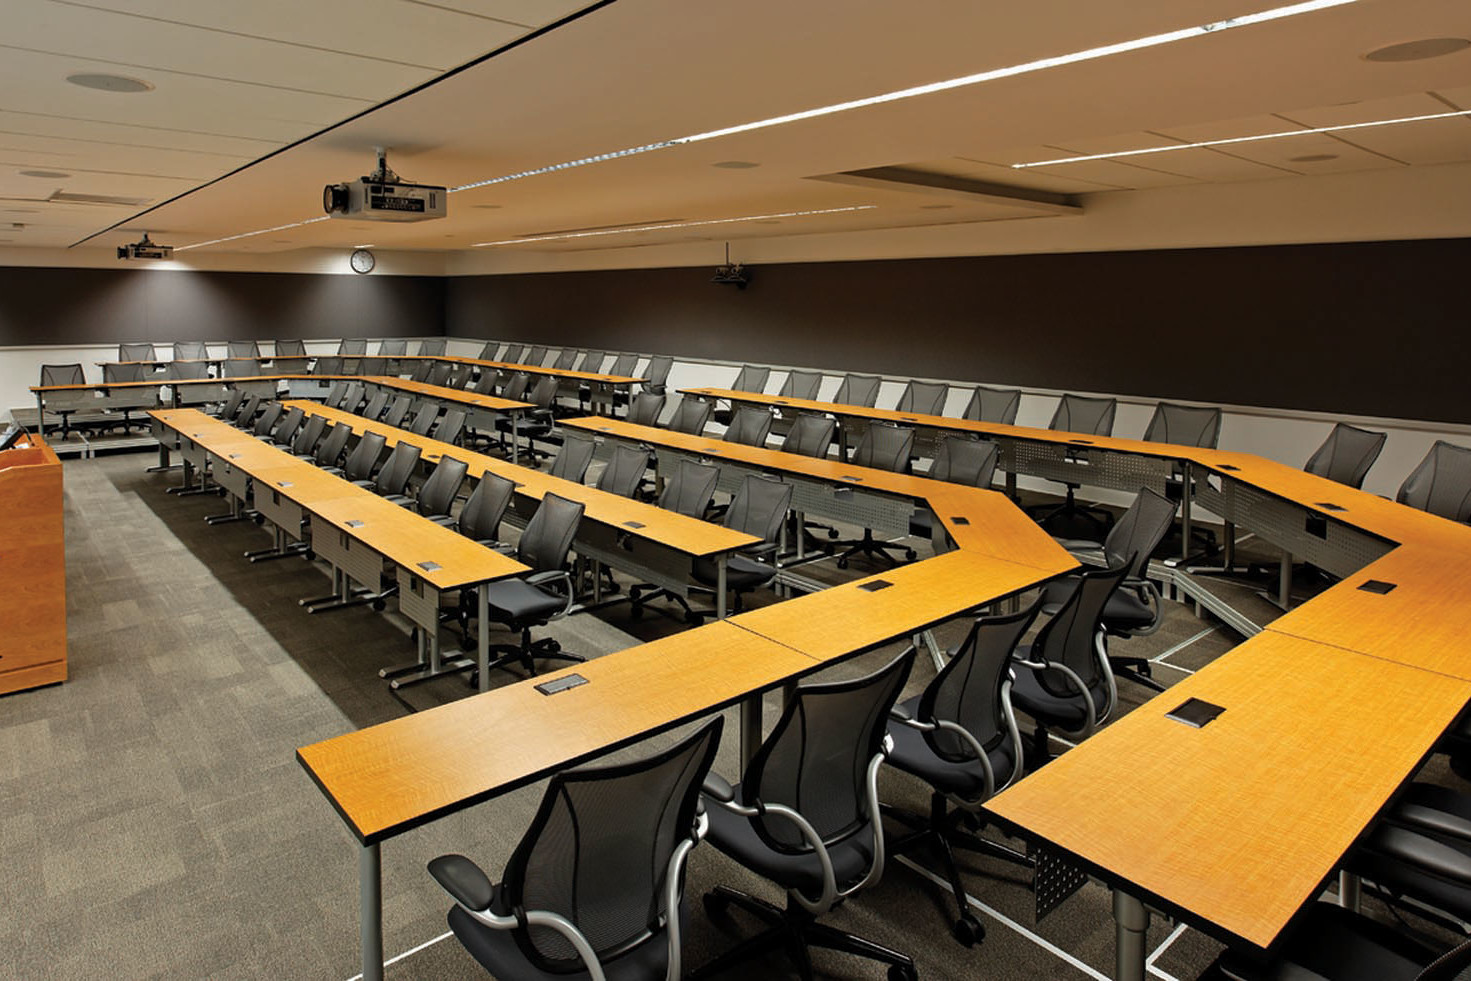 Lecture hall with four tier seating with black mesh back chairs, podium, overhead projector